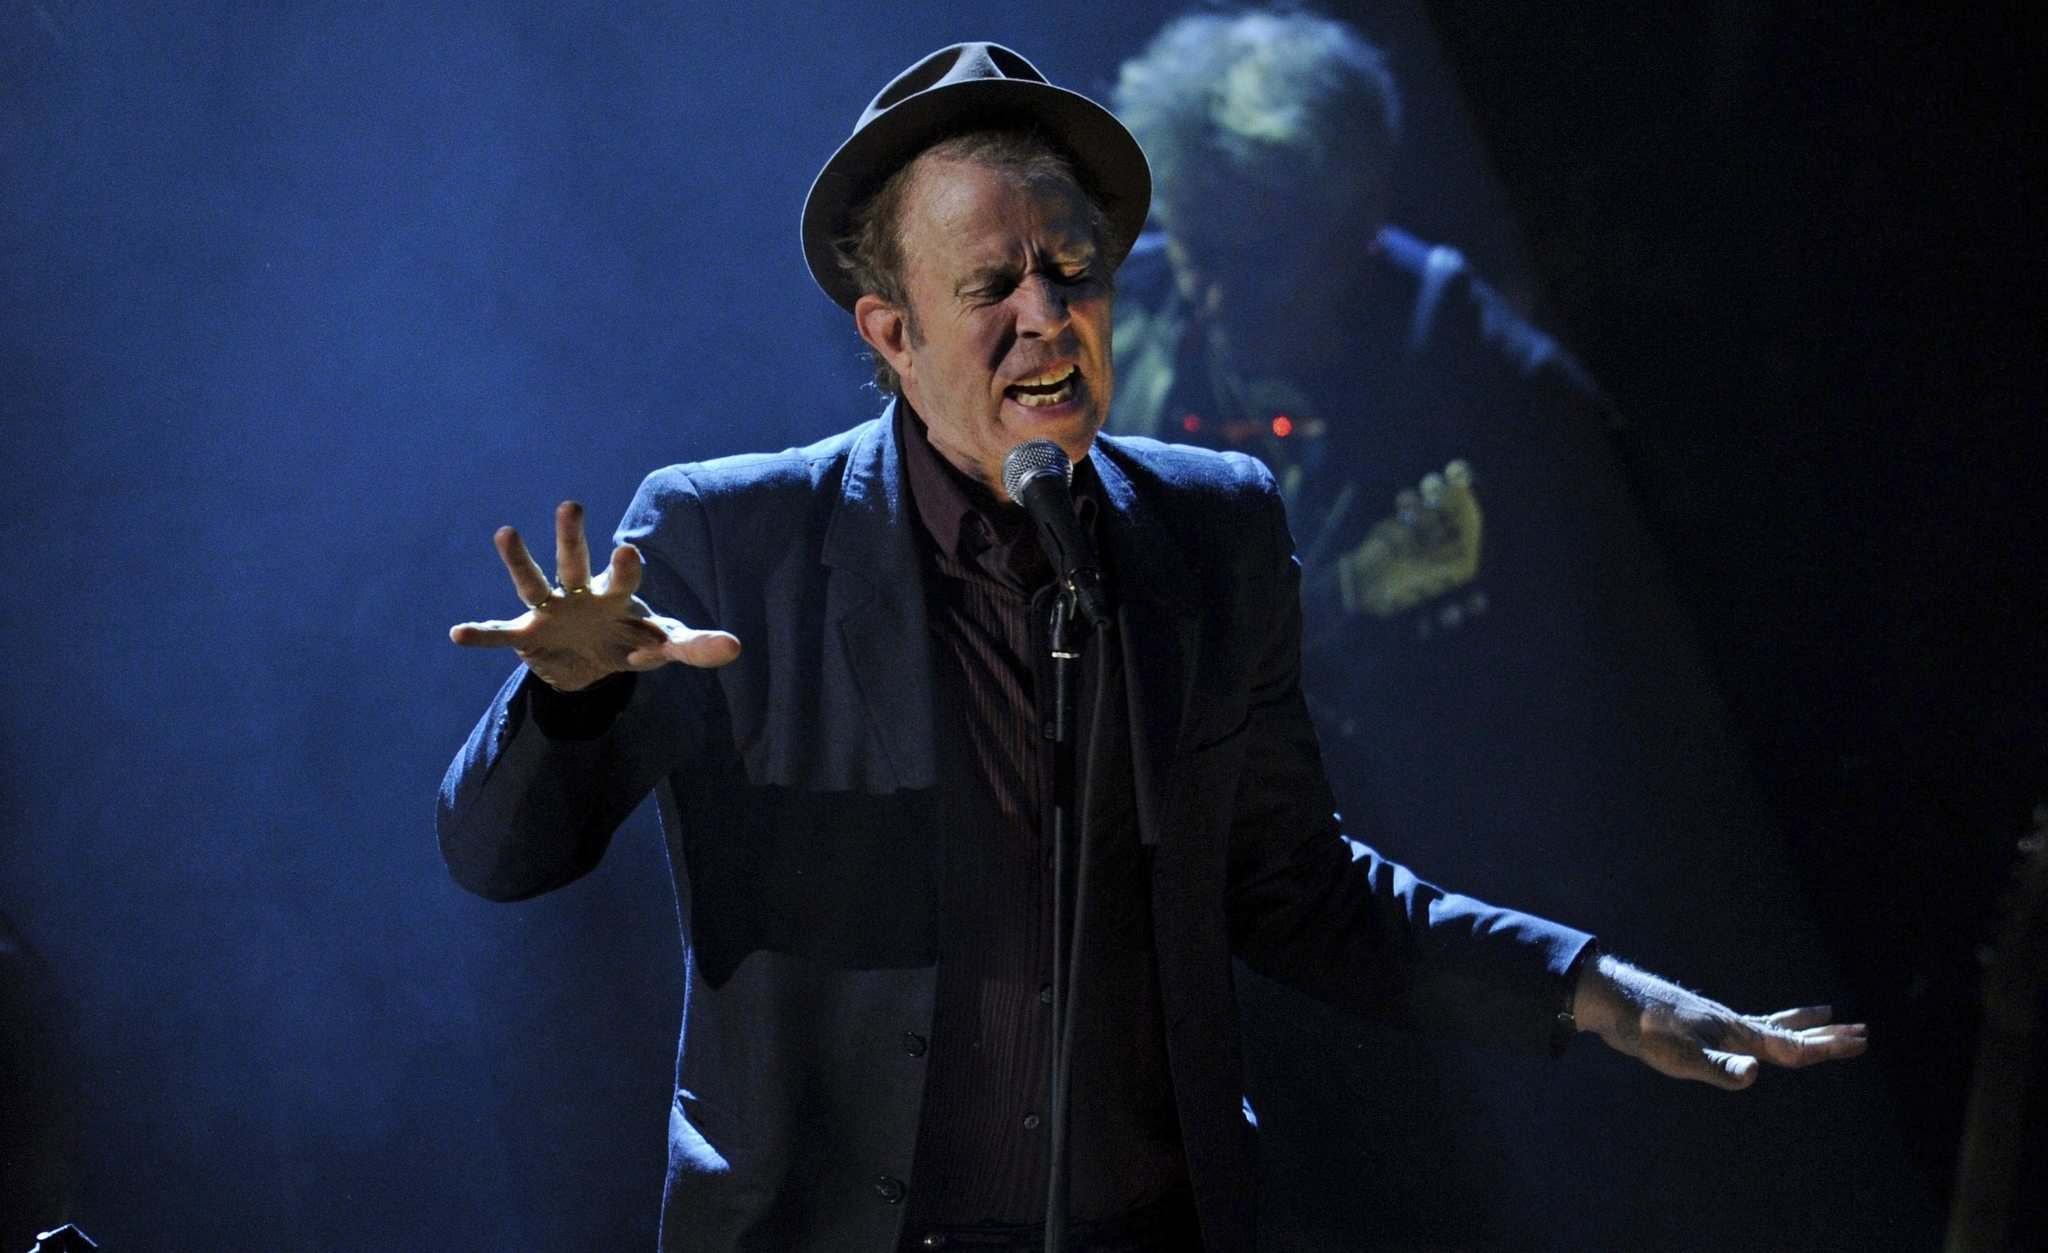 Evan Agostini / The Associated Press files</p><p>The Times Change(d) High & Lonesome Club is ringing in Tom Waits' 70th birthday with a tribute concert on Friday, Dec. 6., featuring Kipp Kocay and his Nighthawk Diners and Mayor Matt Allen and the Little Buddies.</p>